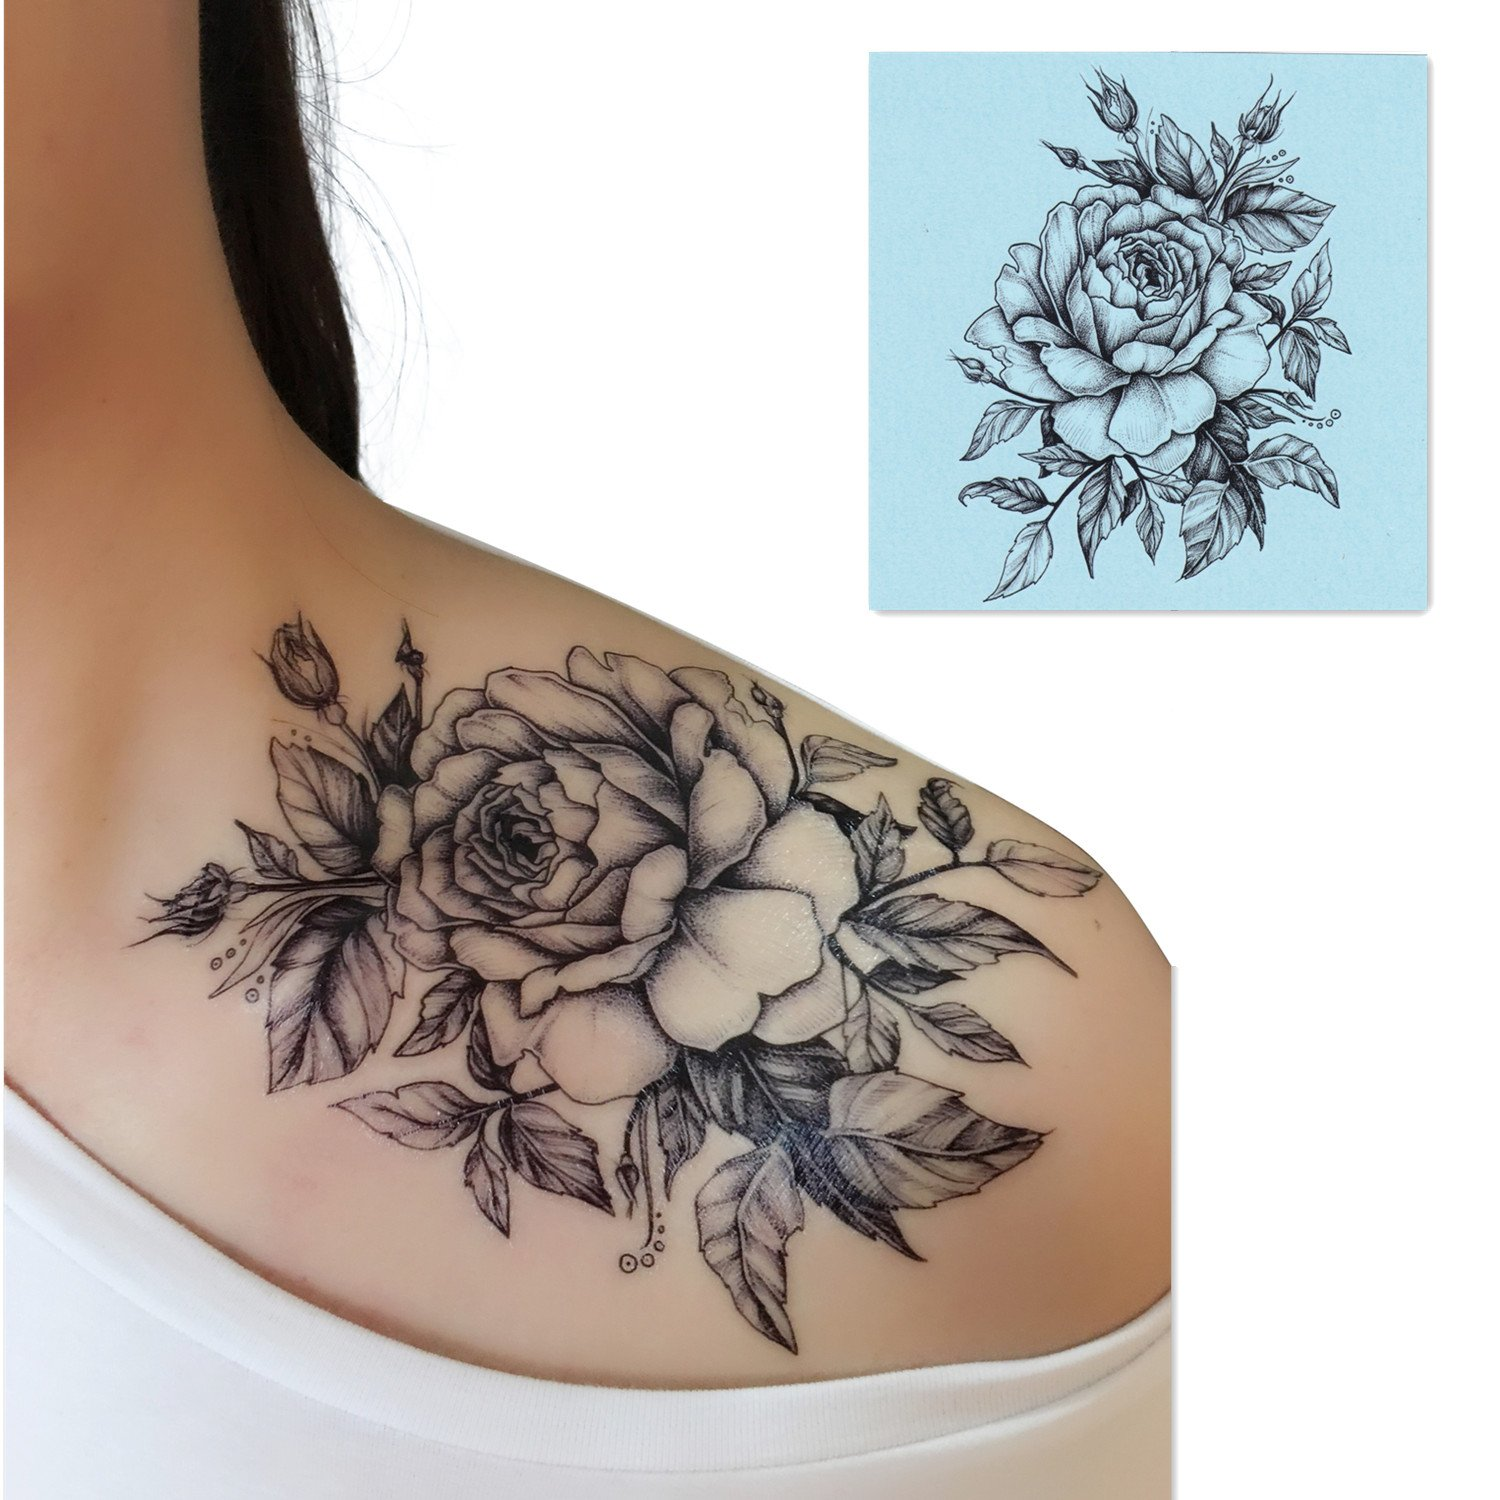 17e8f7230 Amazon.com : DaLin 4 Sheets Sexy Temporary Tattoos for Men Women Flowers  Collection (Black Rose) : Beauty